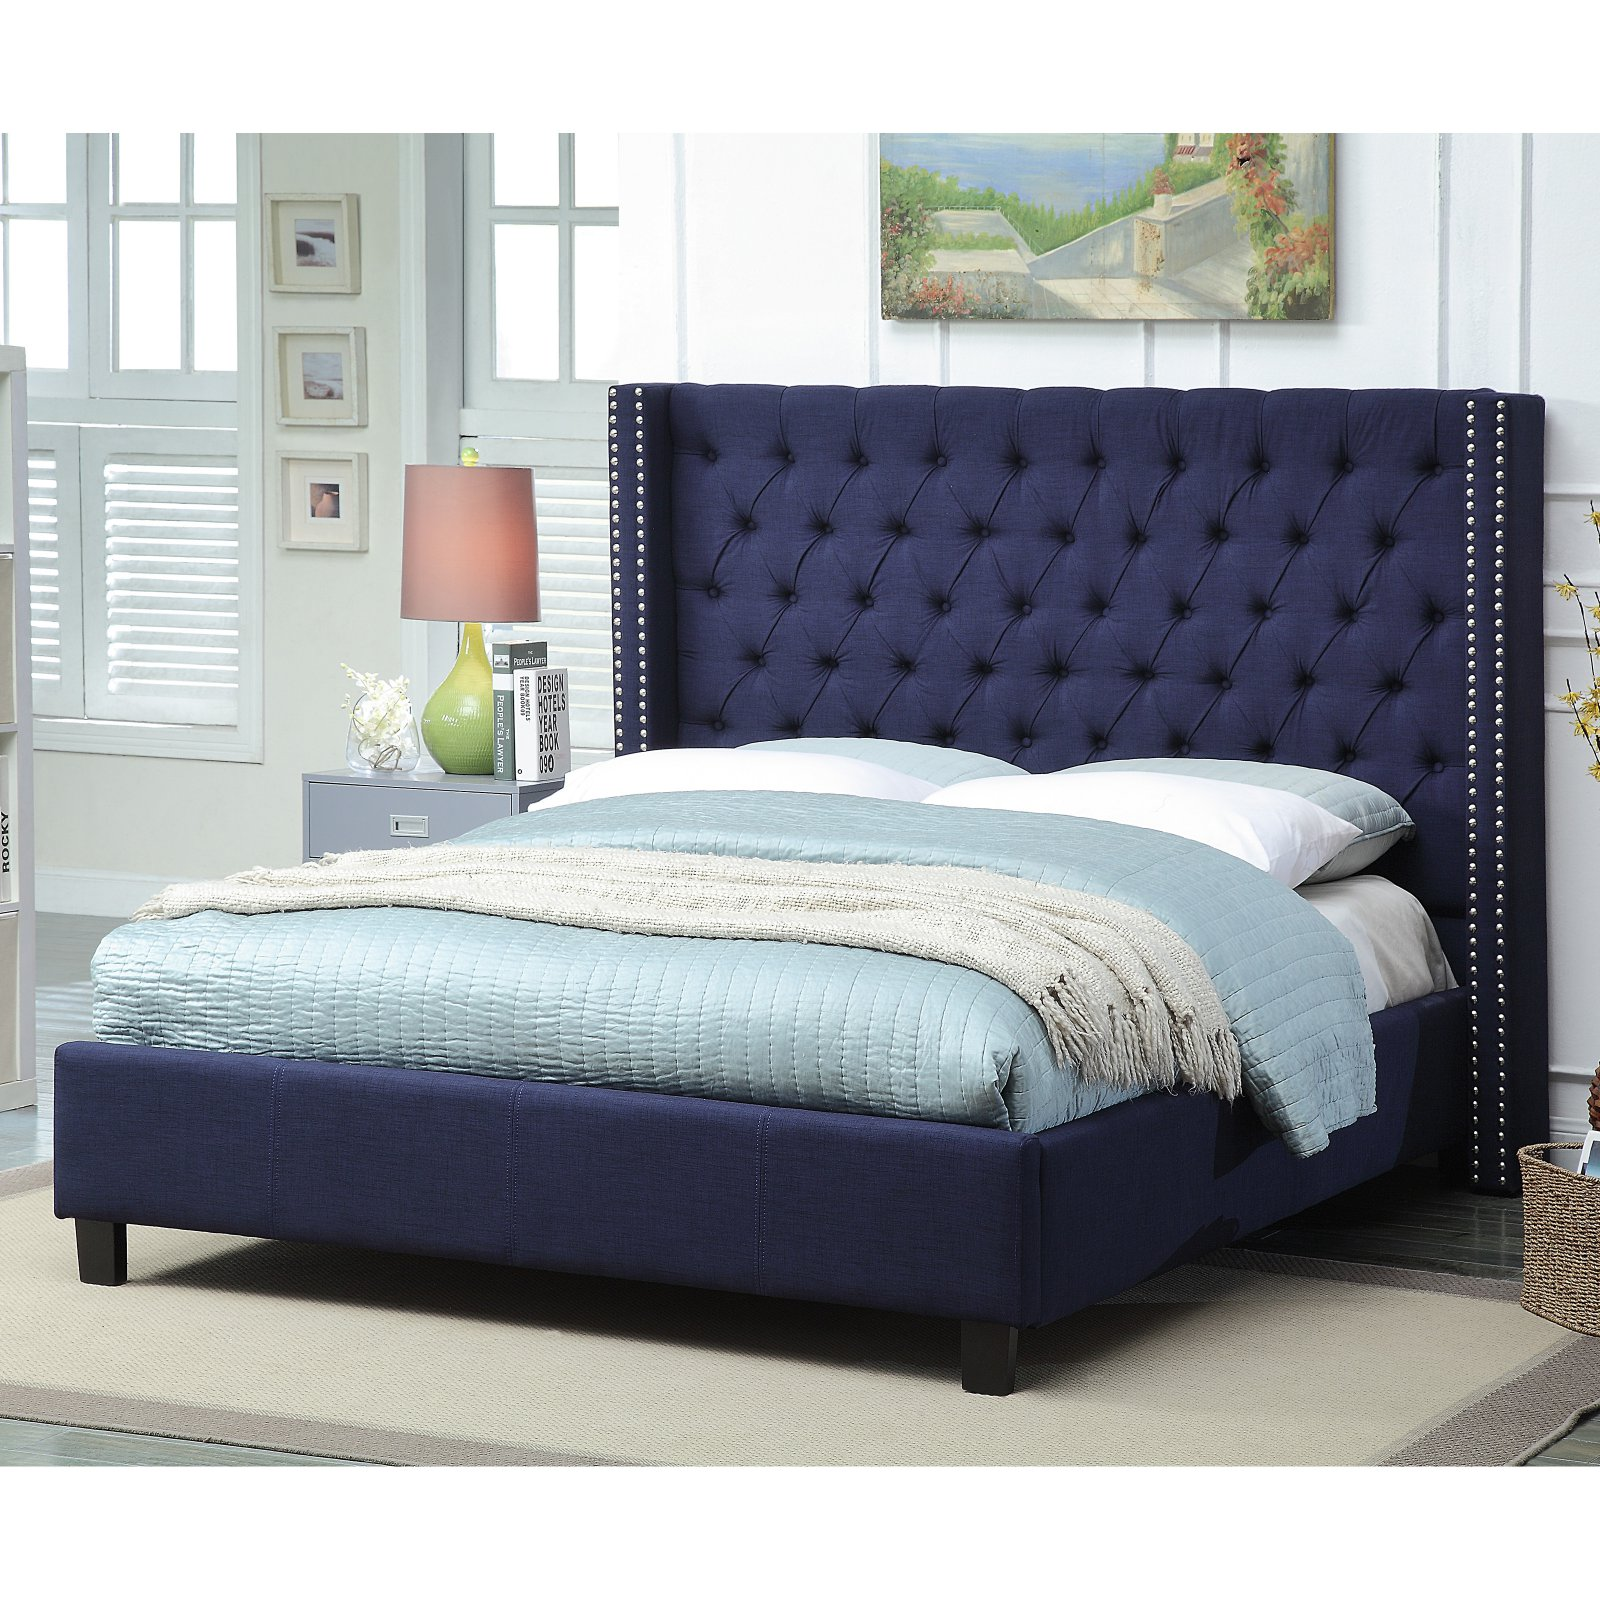 Meridian Ashton Wingback Upholstered Bed